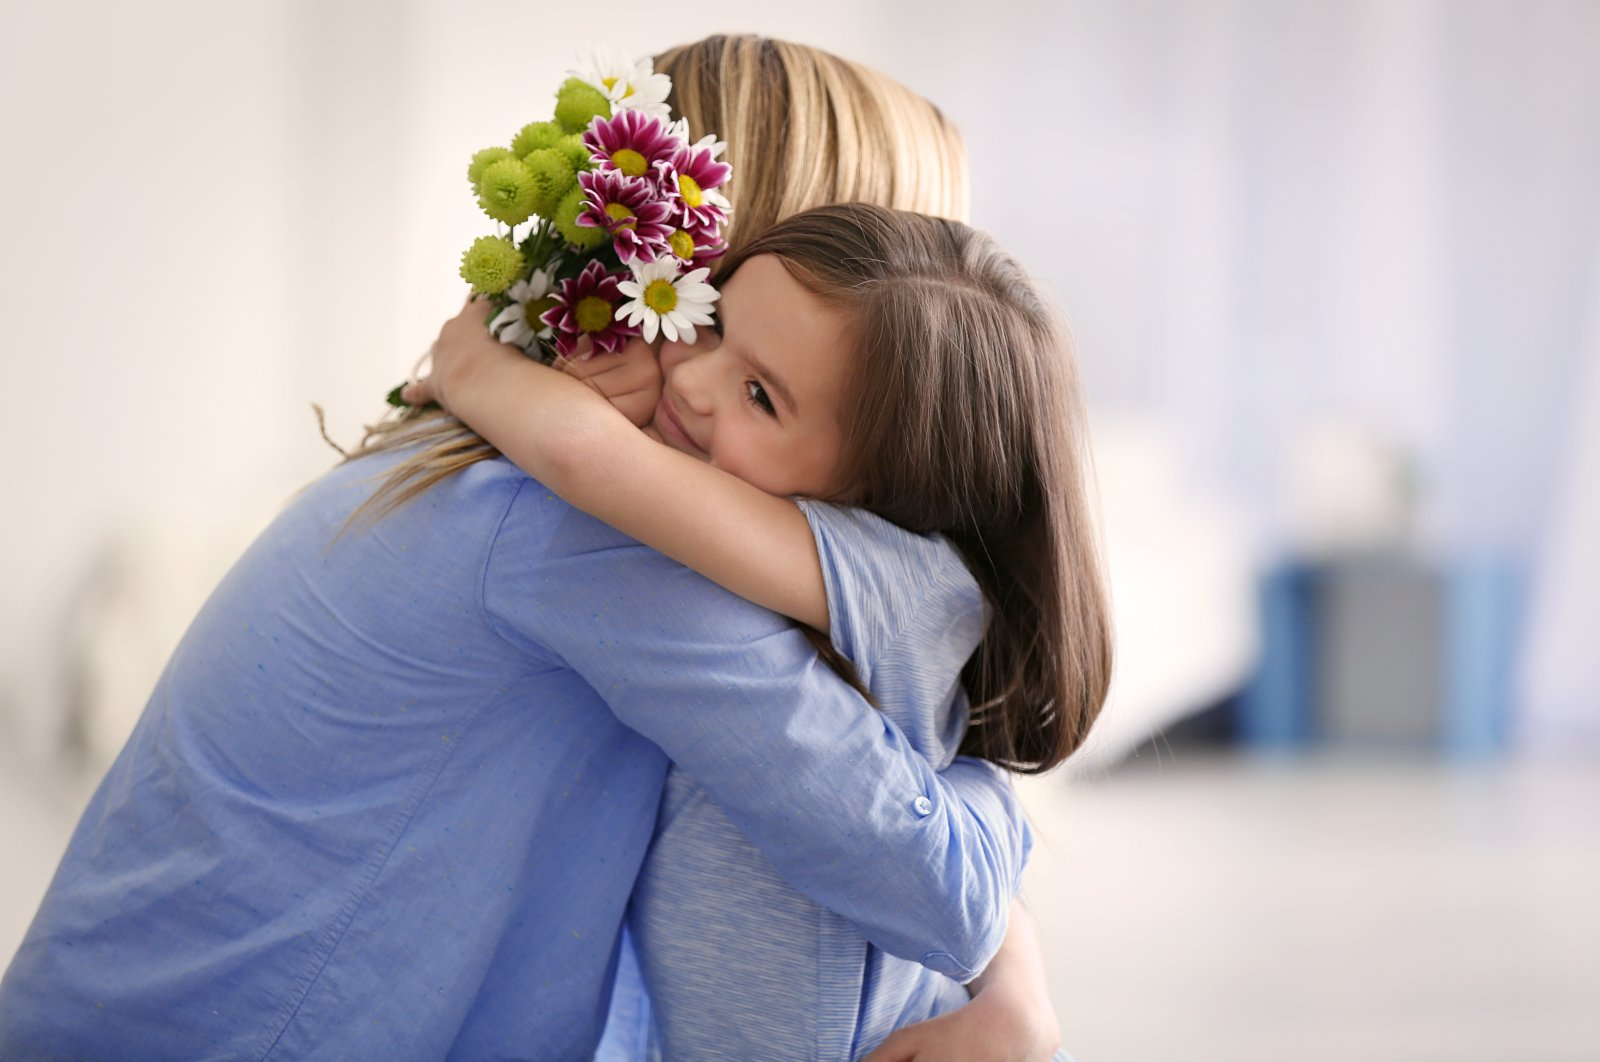 Sunday marks the 107th Mother's Day commemoration since the celebration's first official inception over a century ago. (Shutterstock Photo)